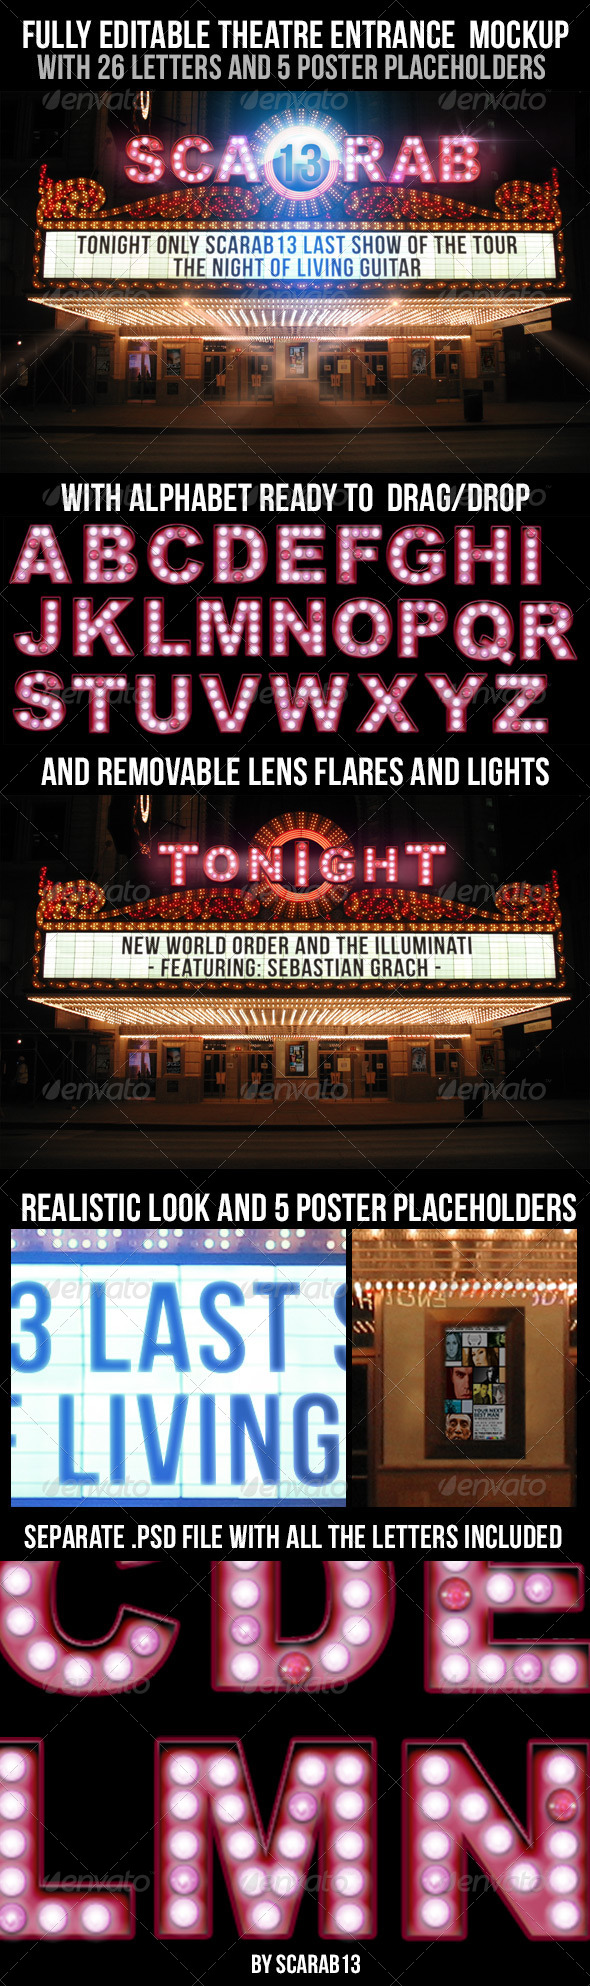 GraphicRiver Realistic Looking Editable Theatre Mockup 6851306